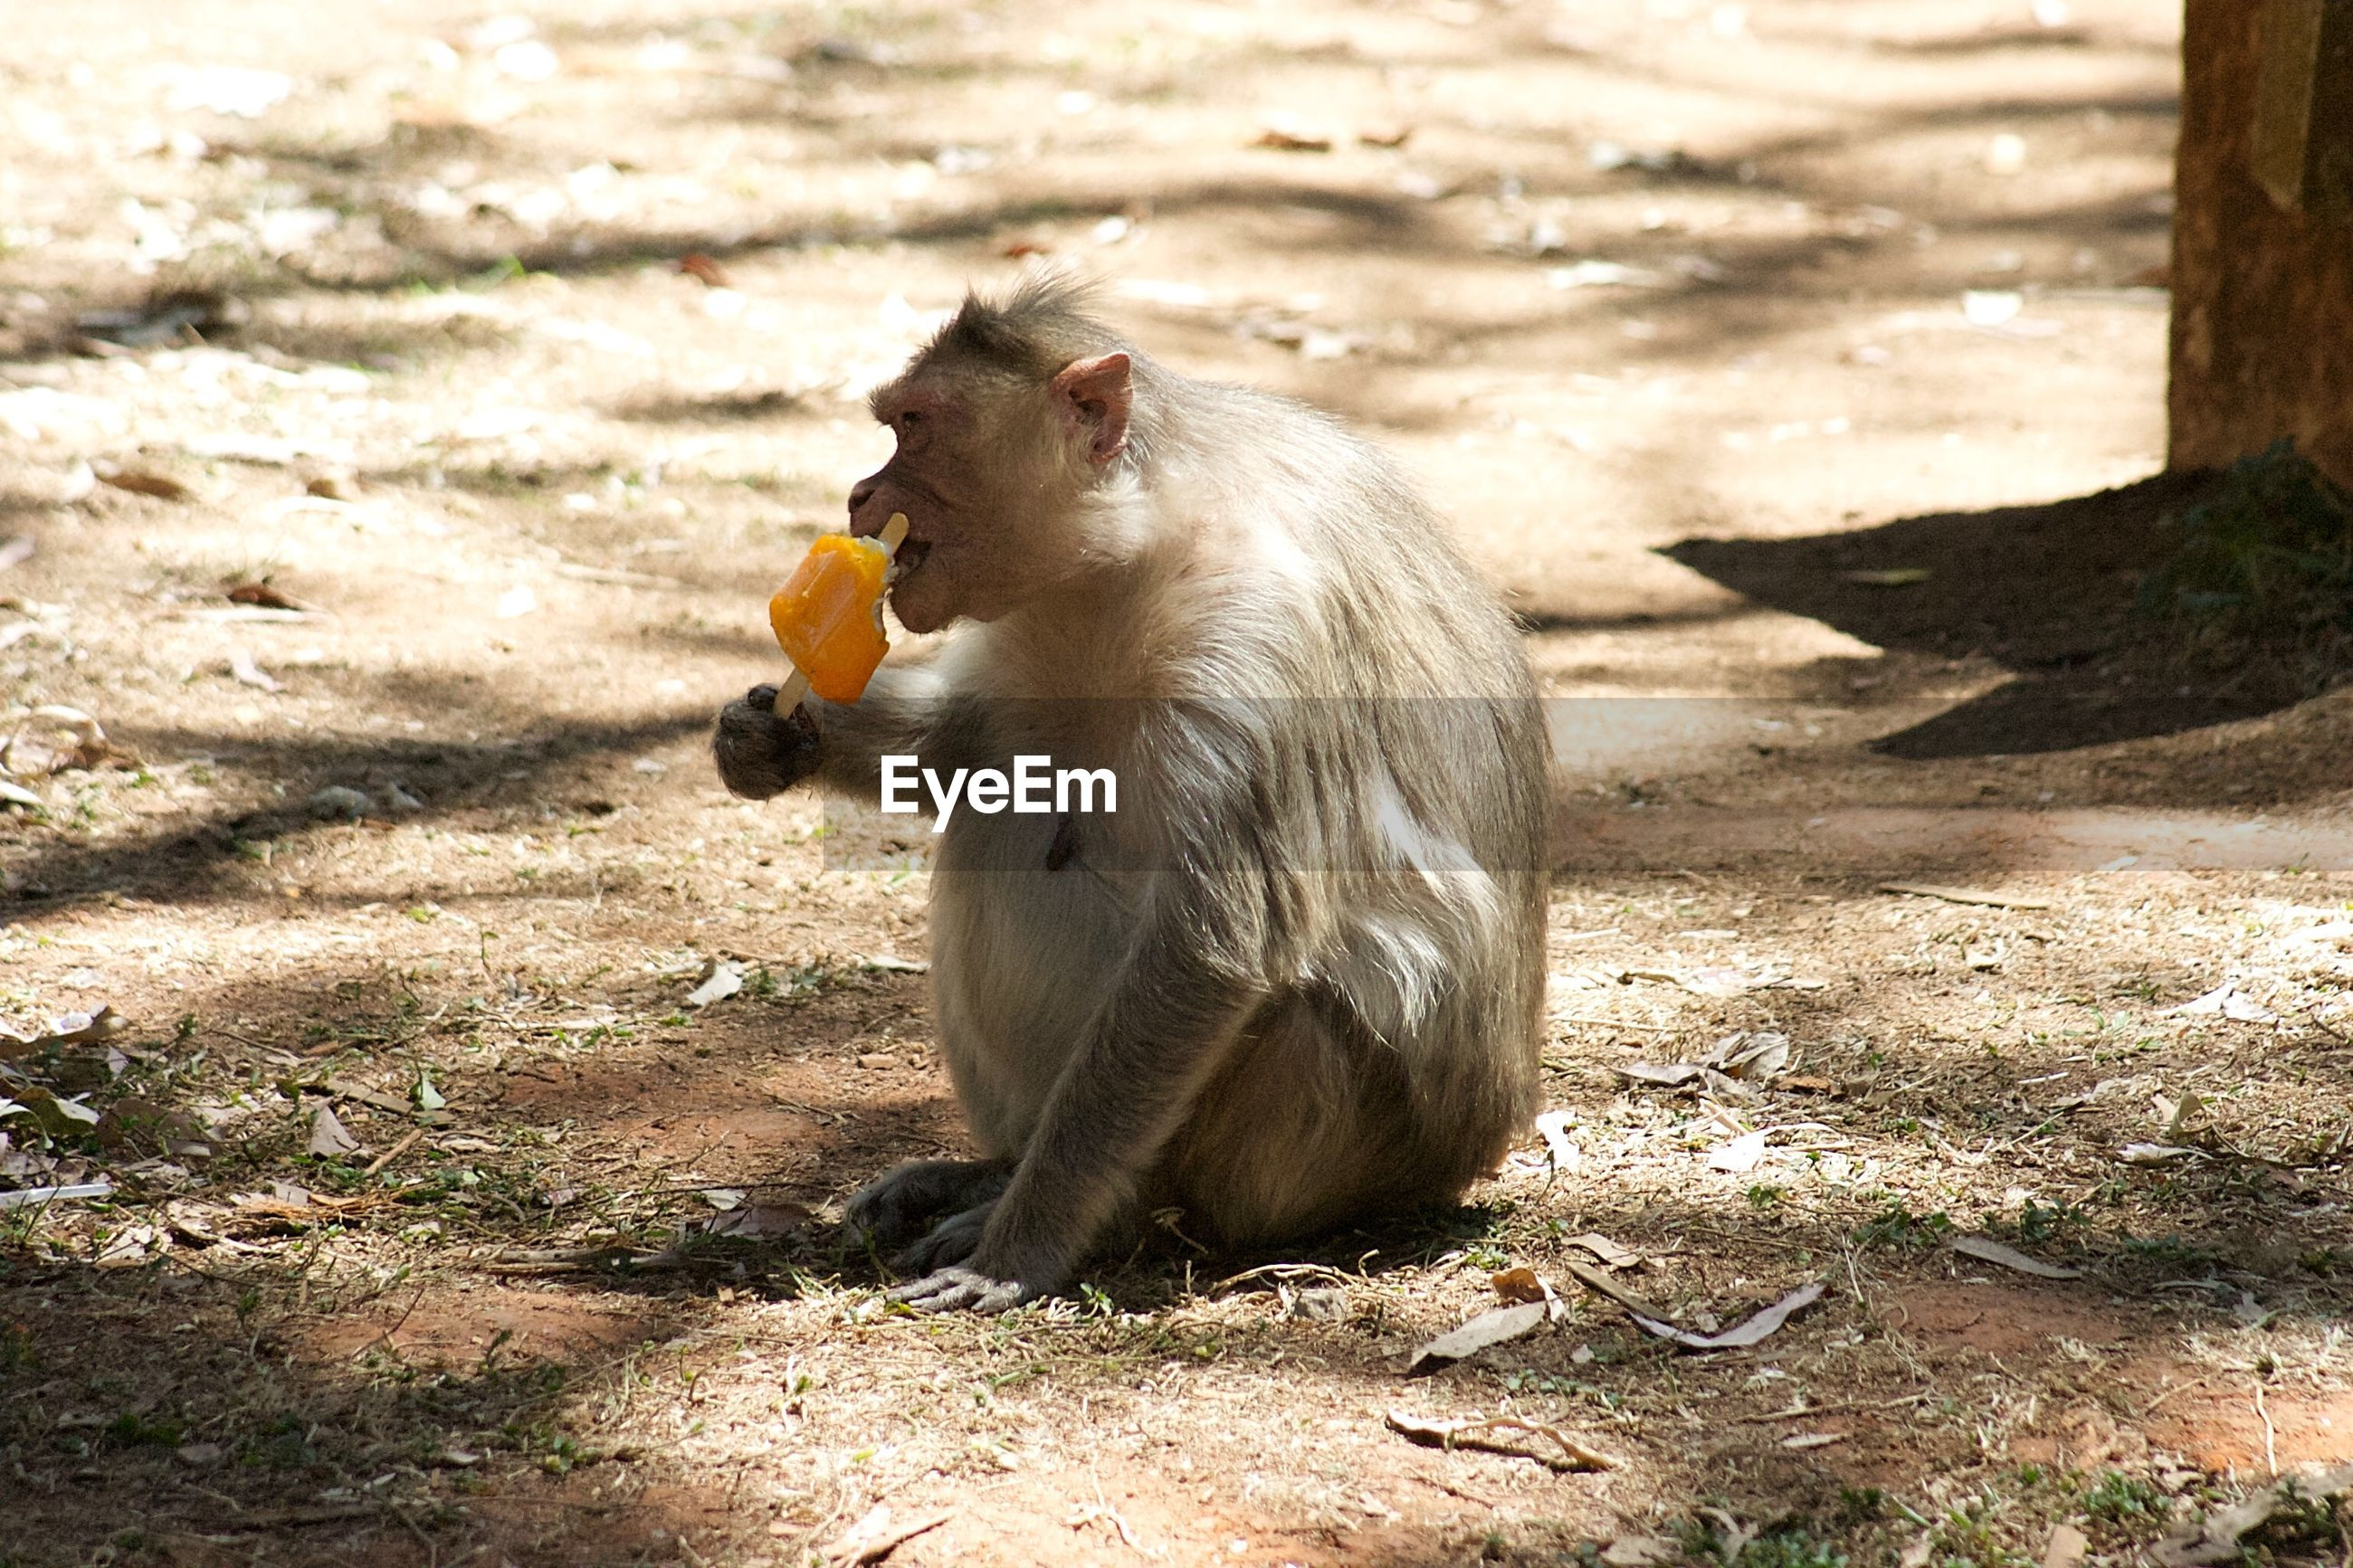 VIEW OF MONKEY EATING FOOD